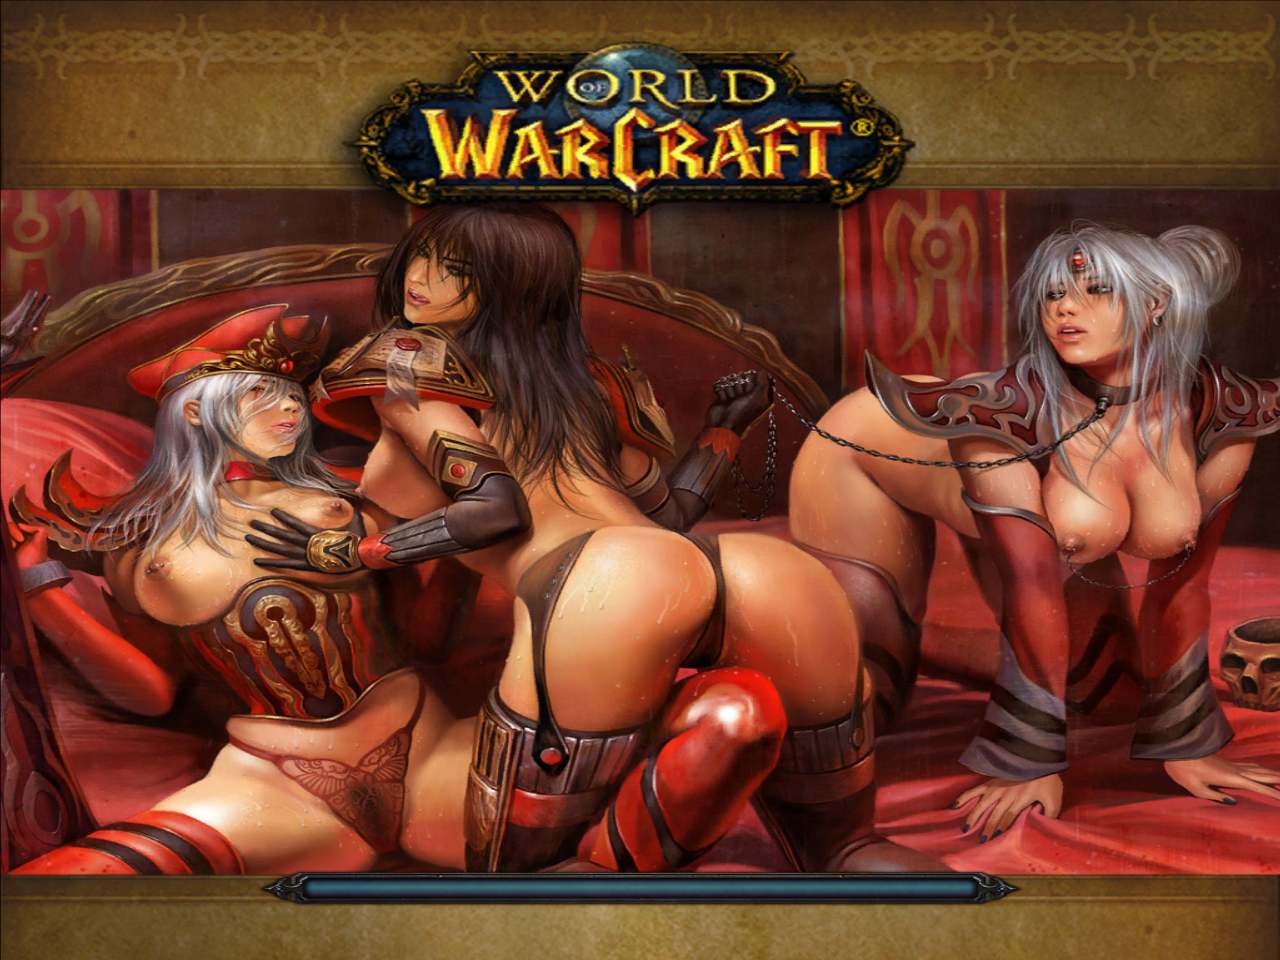 World of warcraft lesbian nude mod sex erotic tube